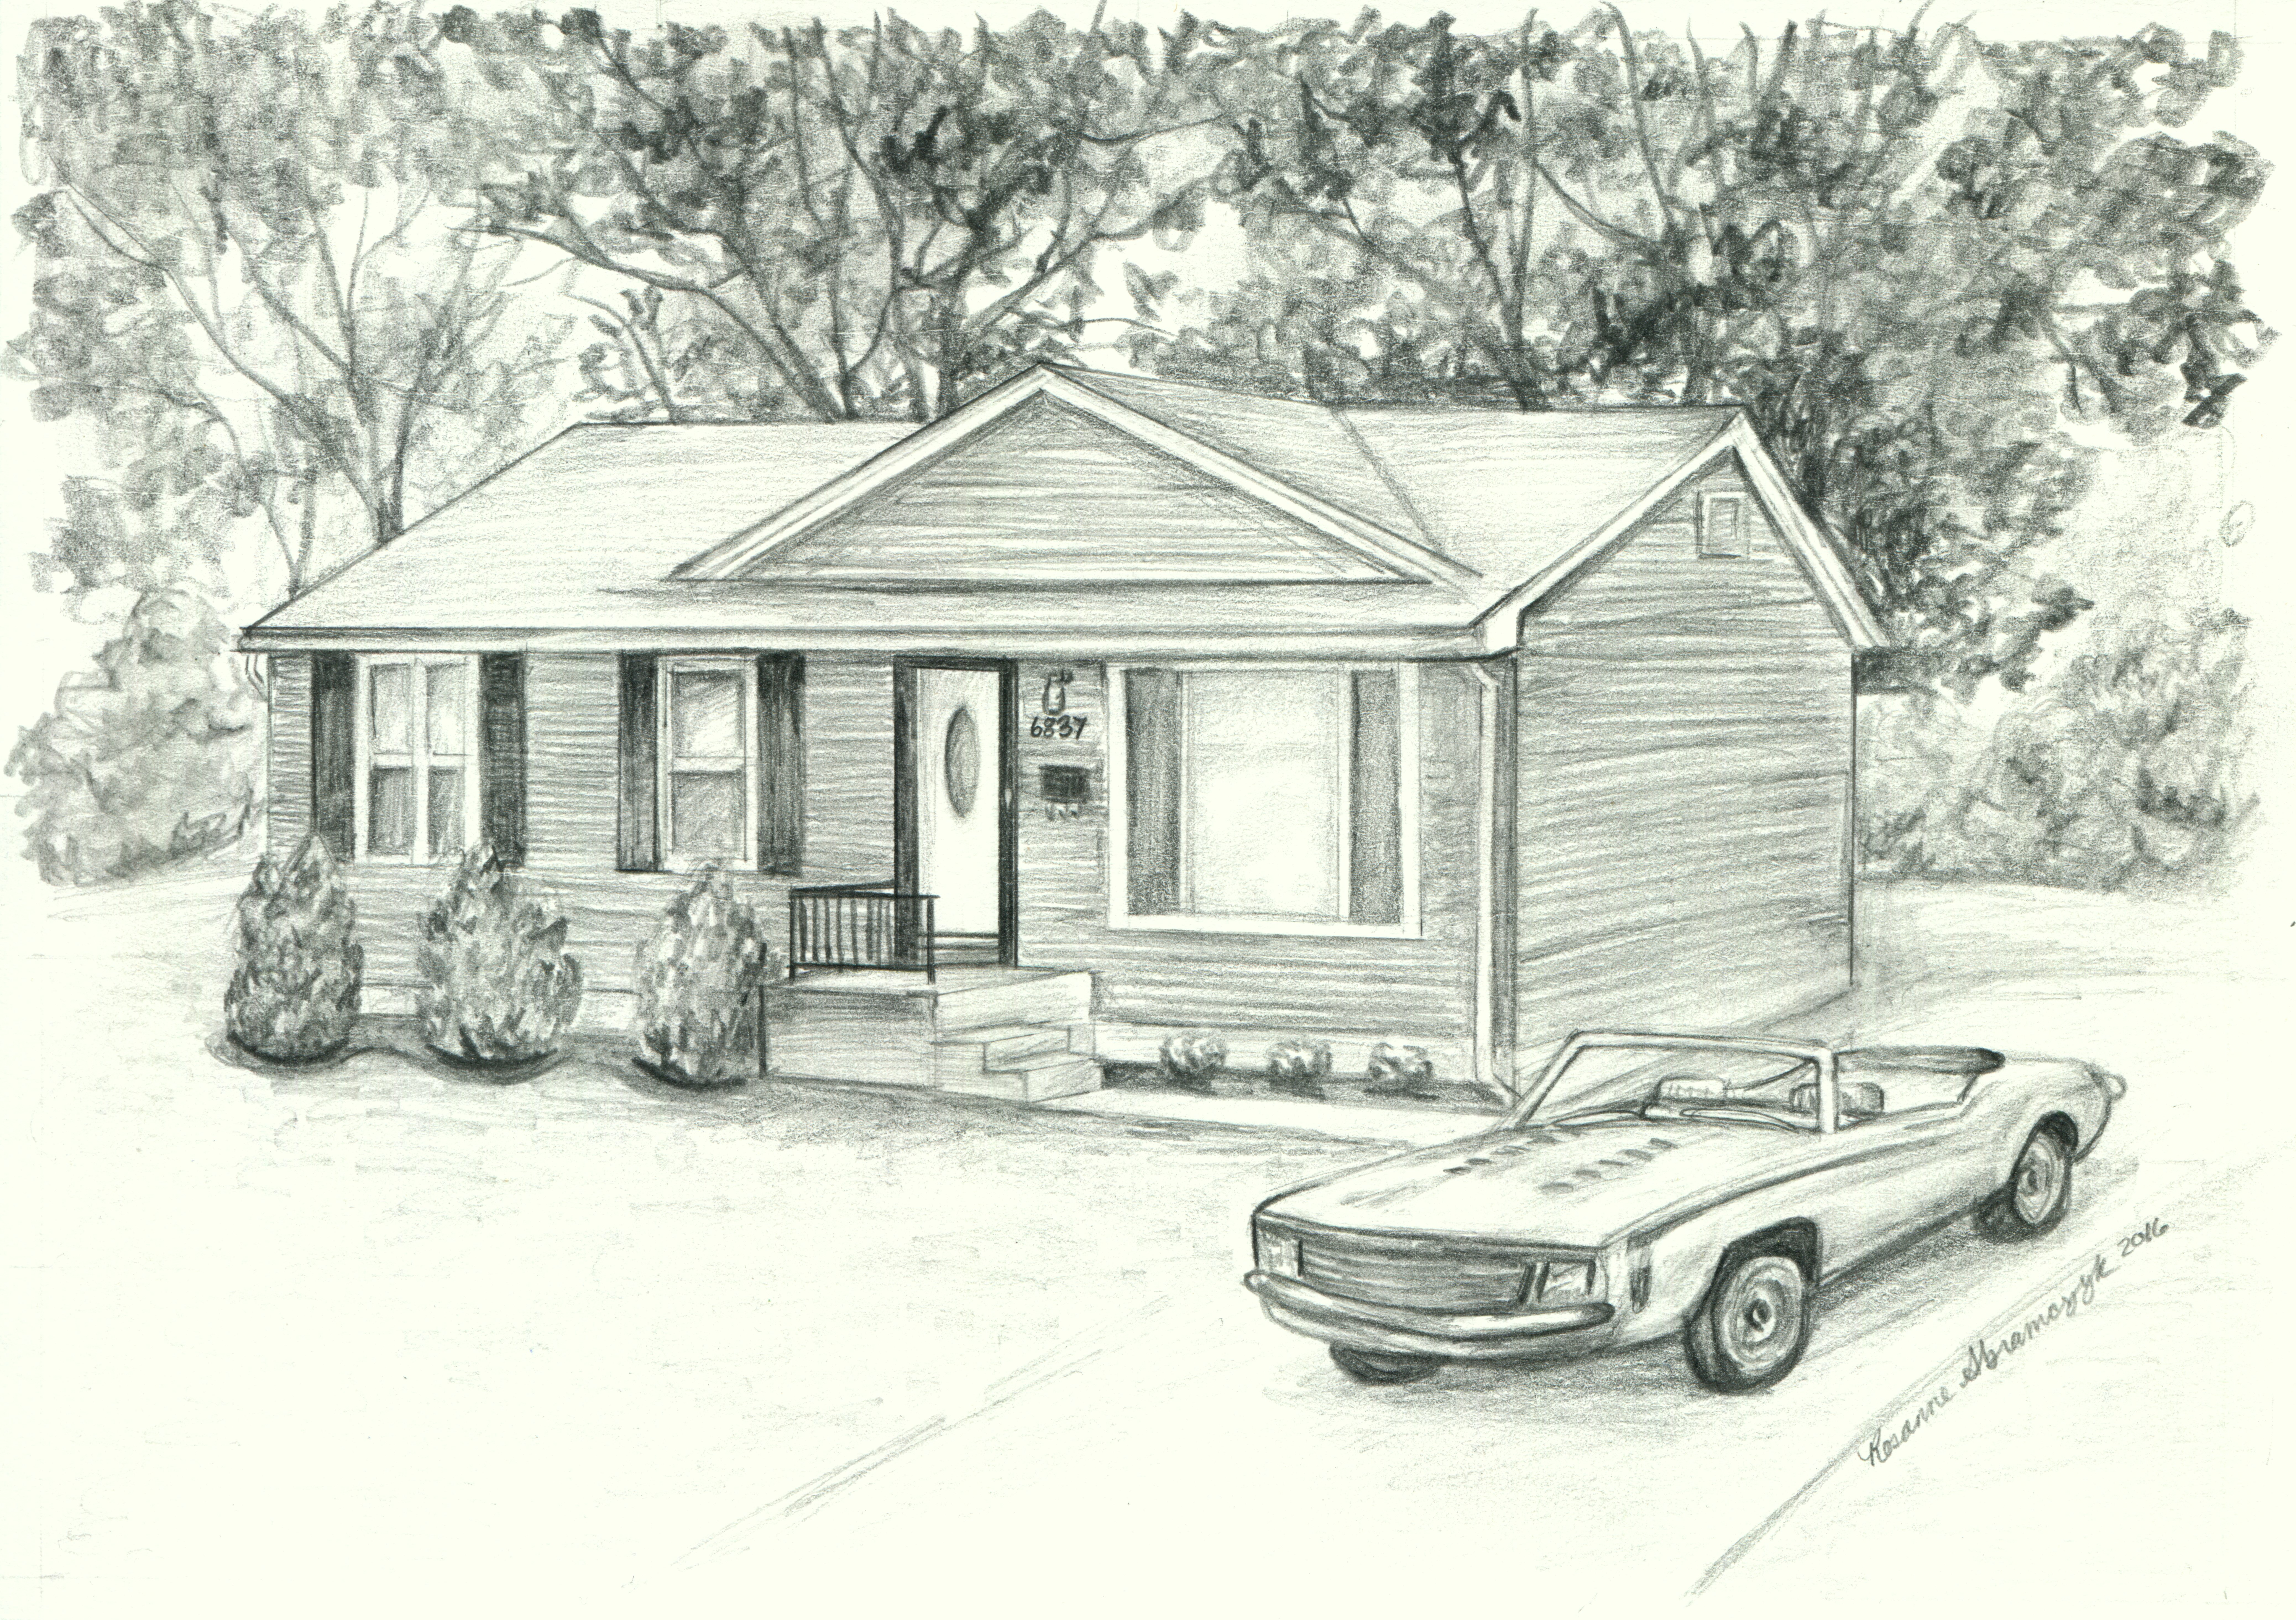 Caroline's House, by Rosie Abramczyk, Pencil Drawing, 2016